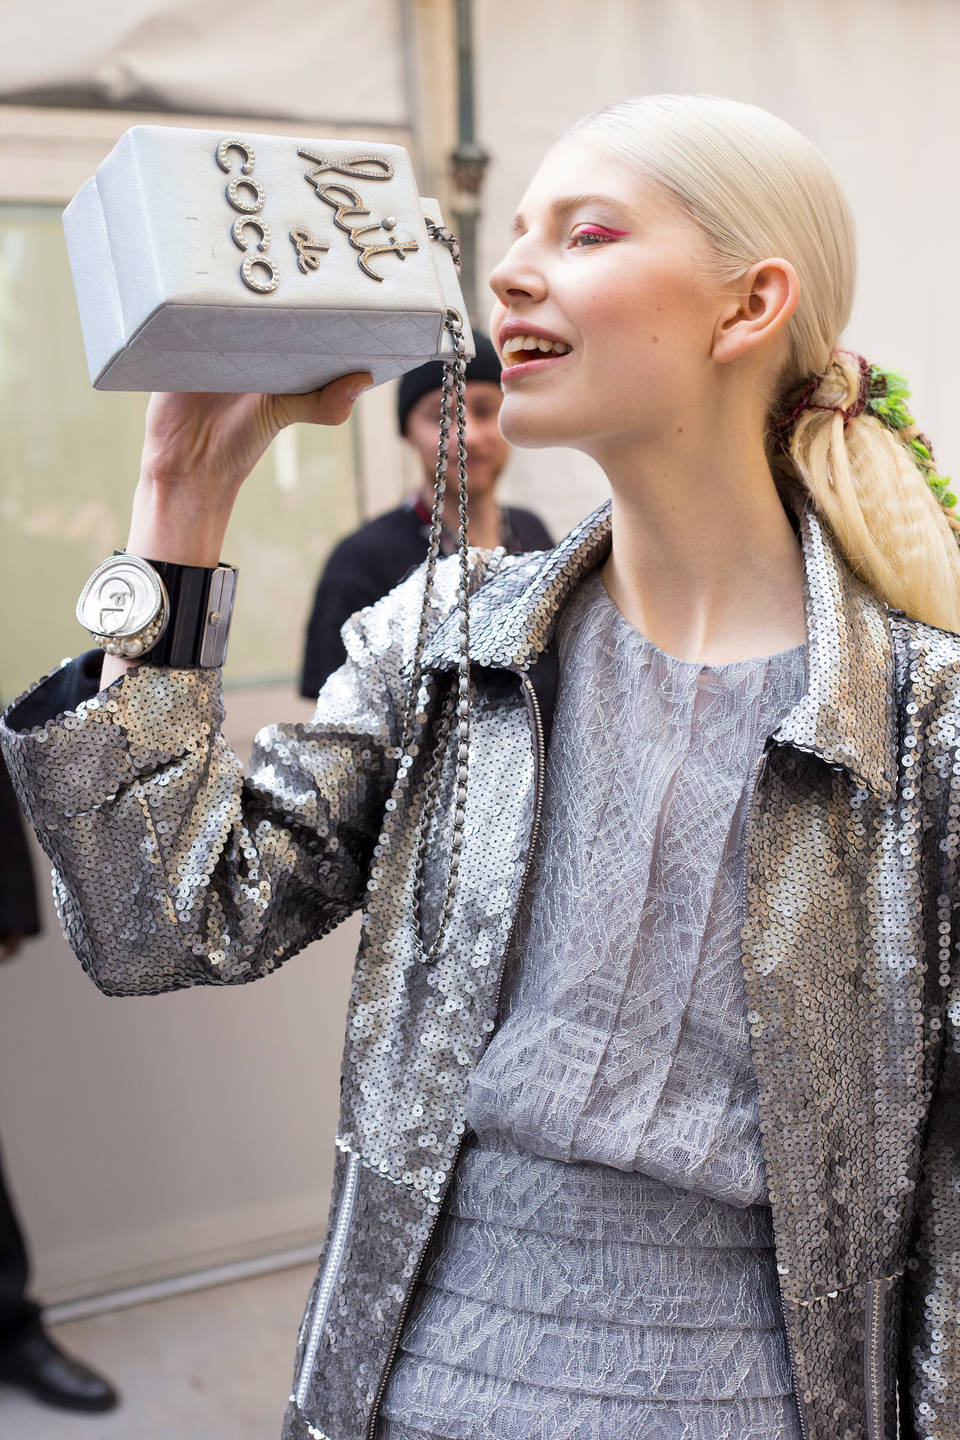 Model with Lait de Coco Evening Bag, Karl Lagerfeld, 2014